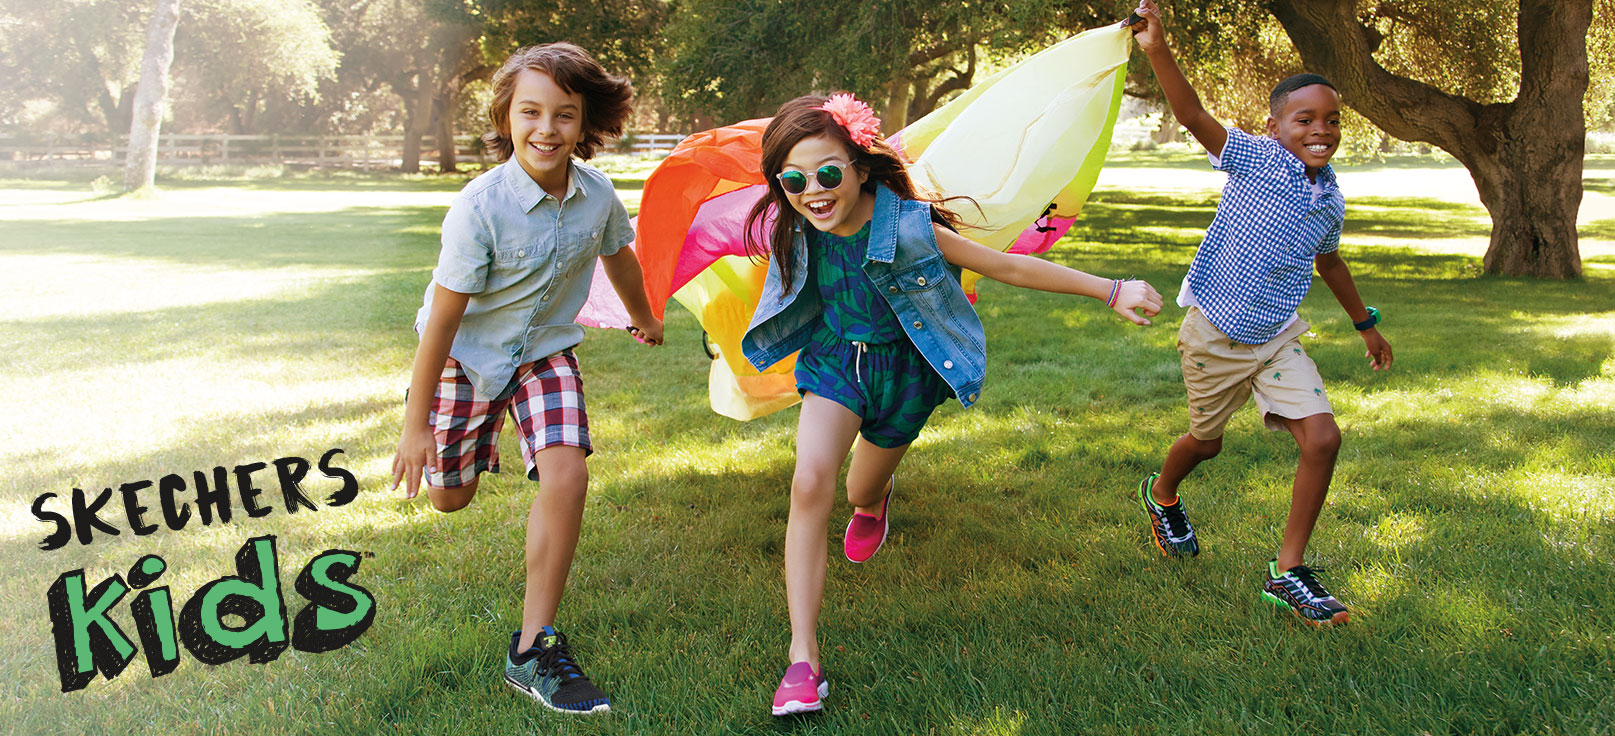 Shop for Skechers Kids shoes including Girls Twinkle Toes and Sport, Memory Foam, Skech-Air and Mega Blades.  Toddler, Preschool and Grade School sizes, and the hot new Energy Lights interactive light-up shoes.